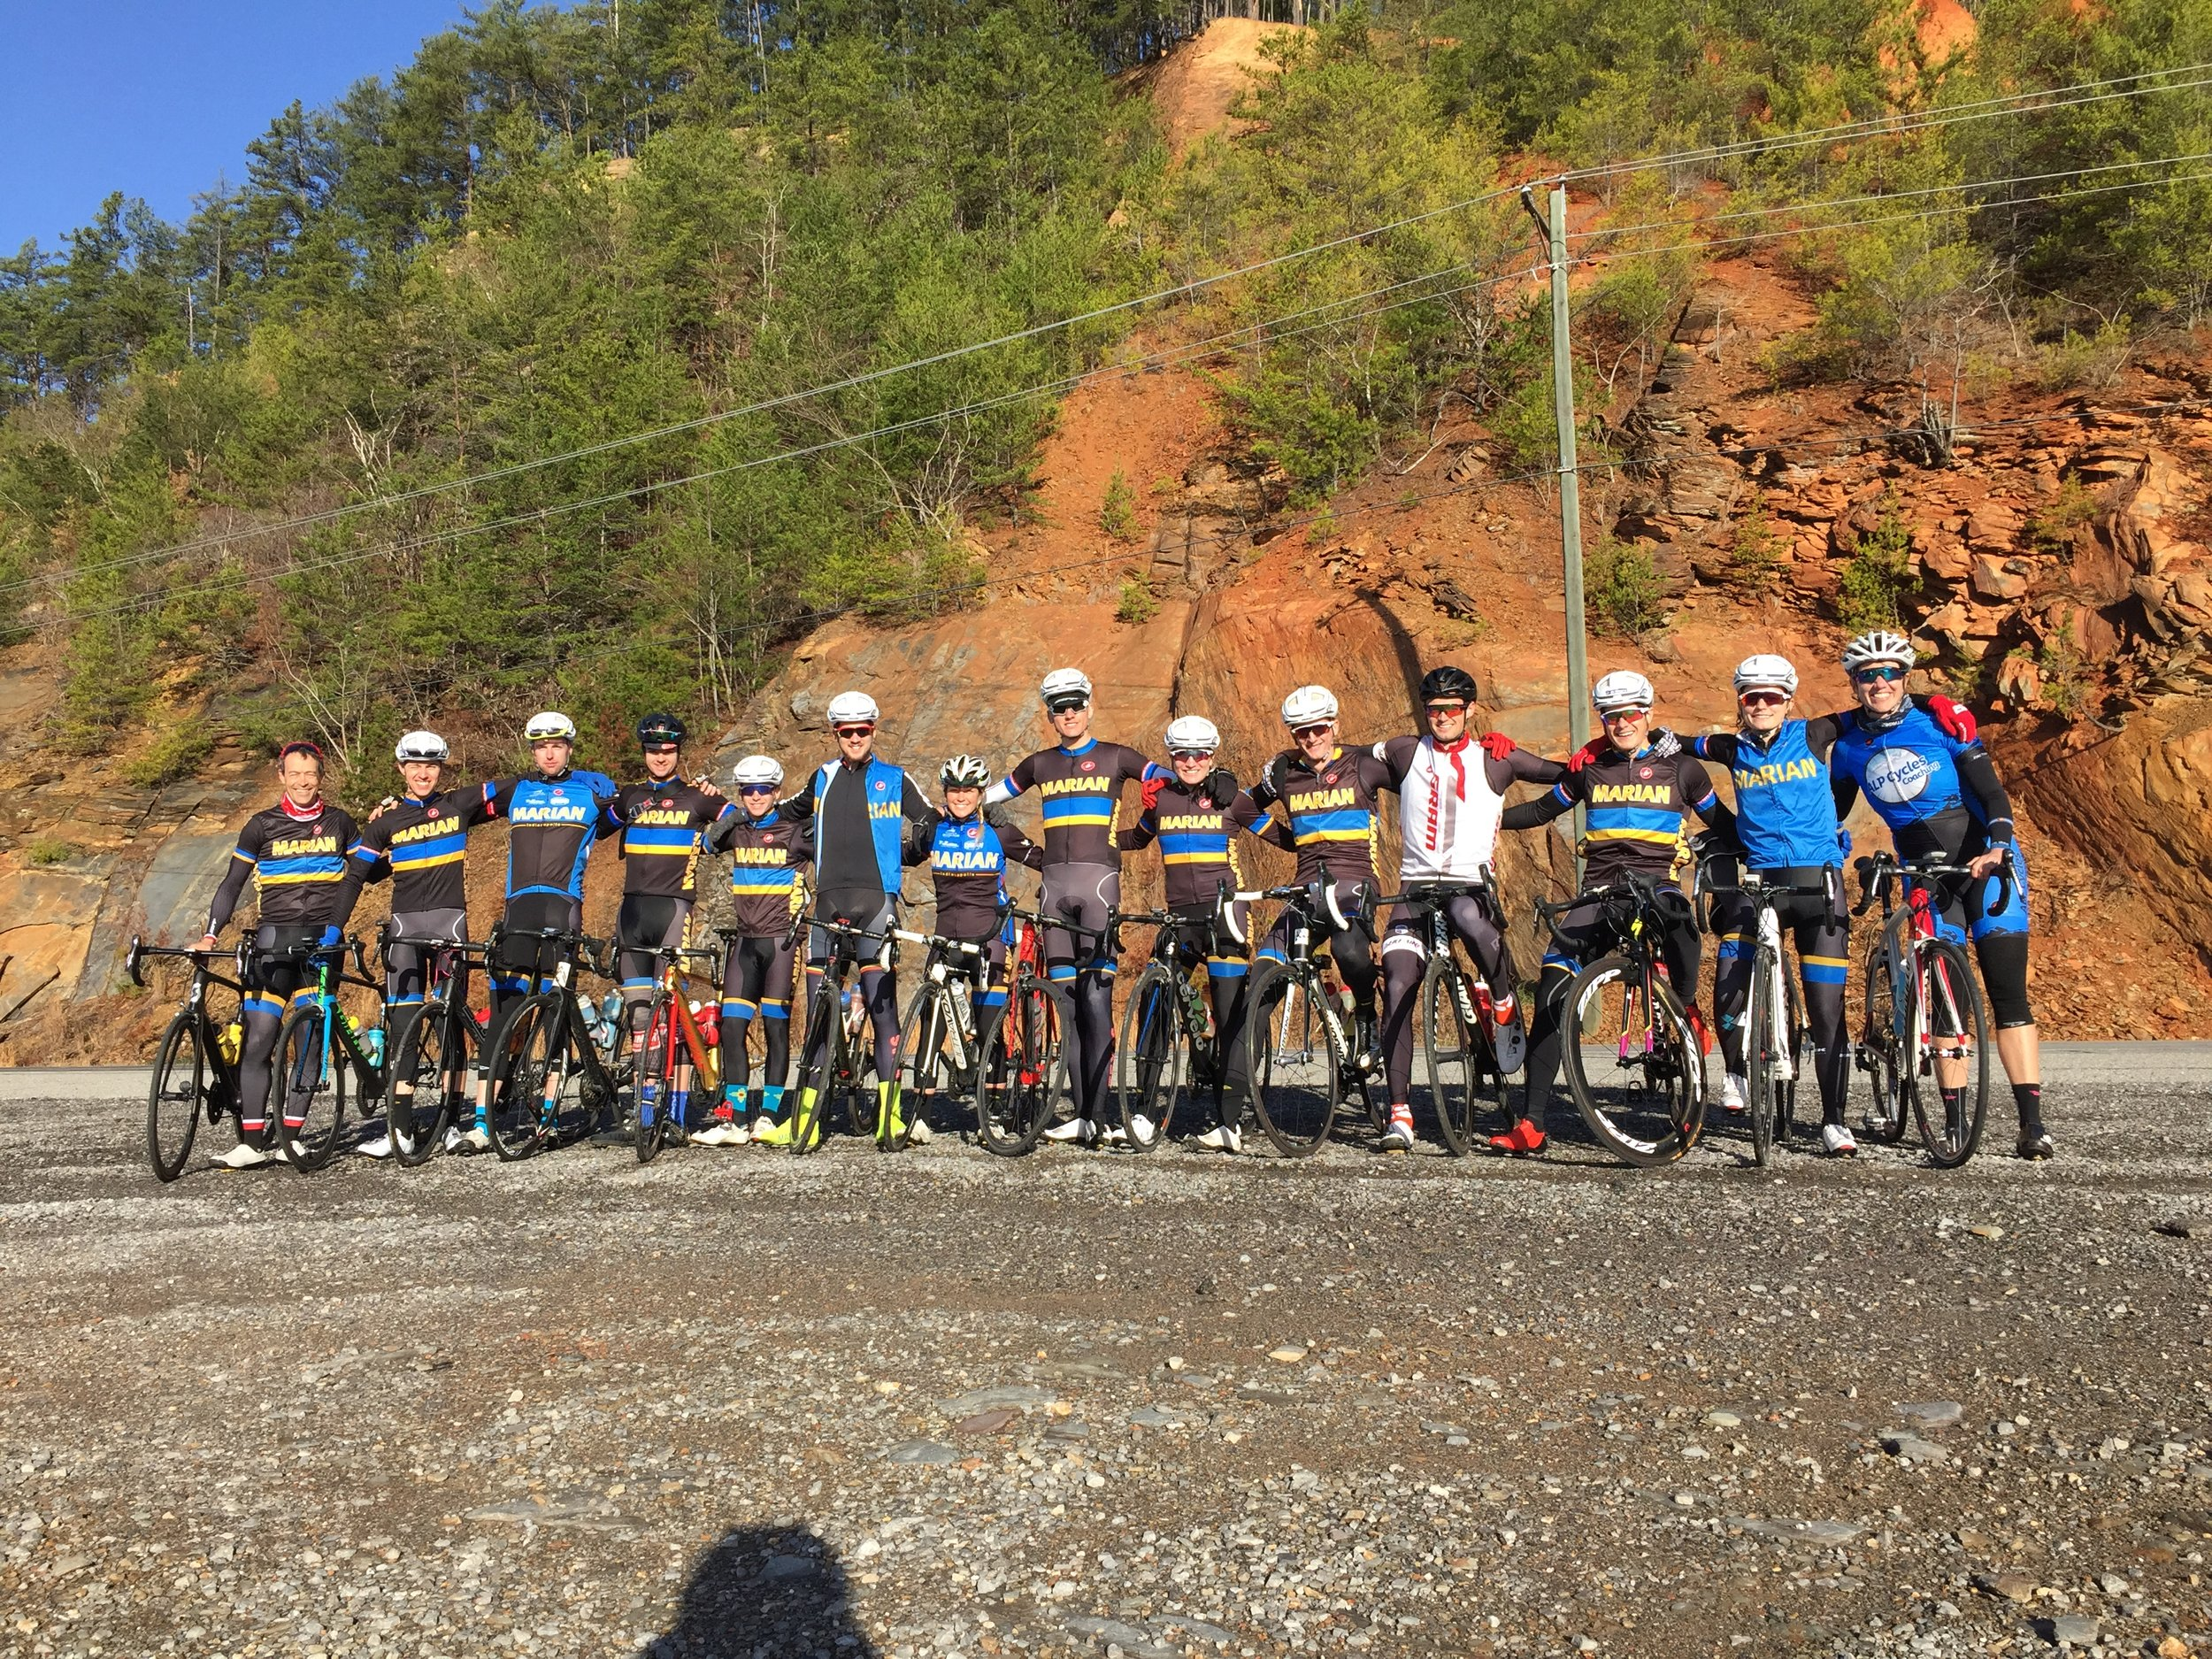 The Senior/Junior squad heading out to ride the Cherohala Skyway.